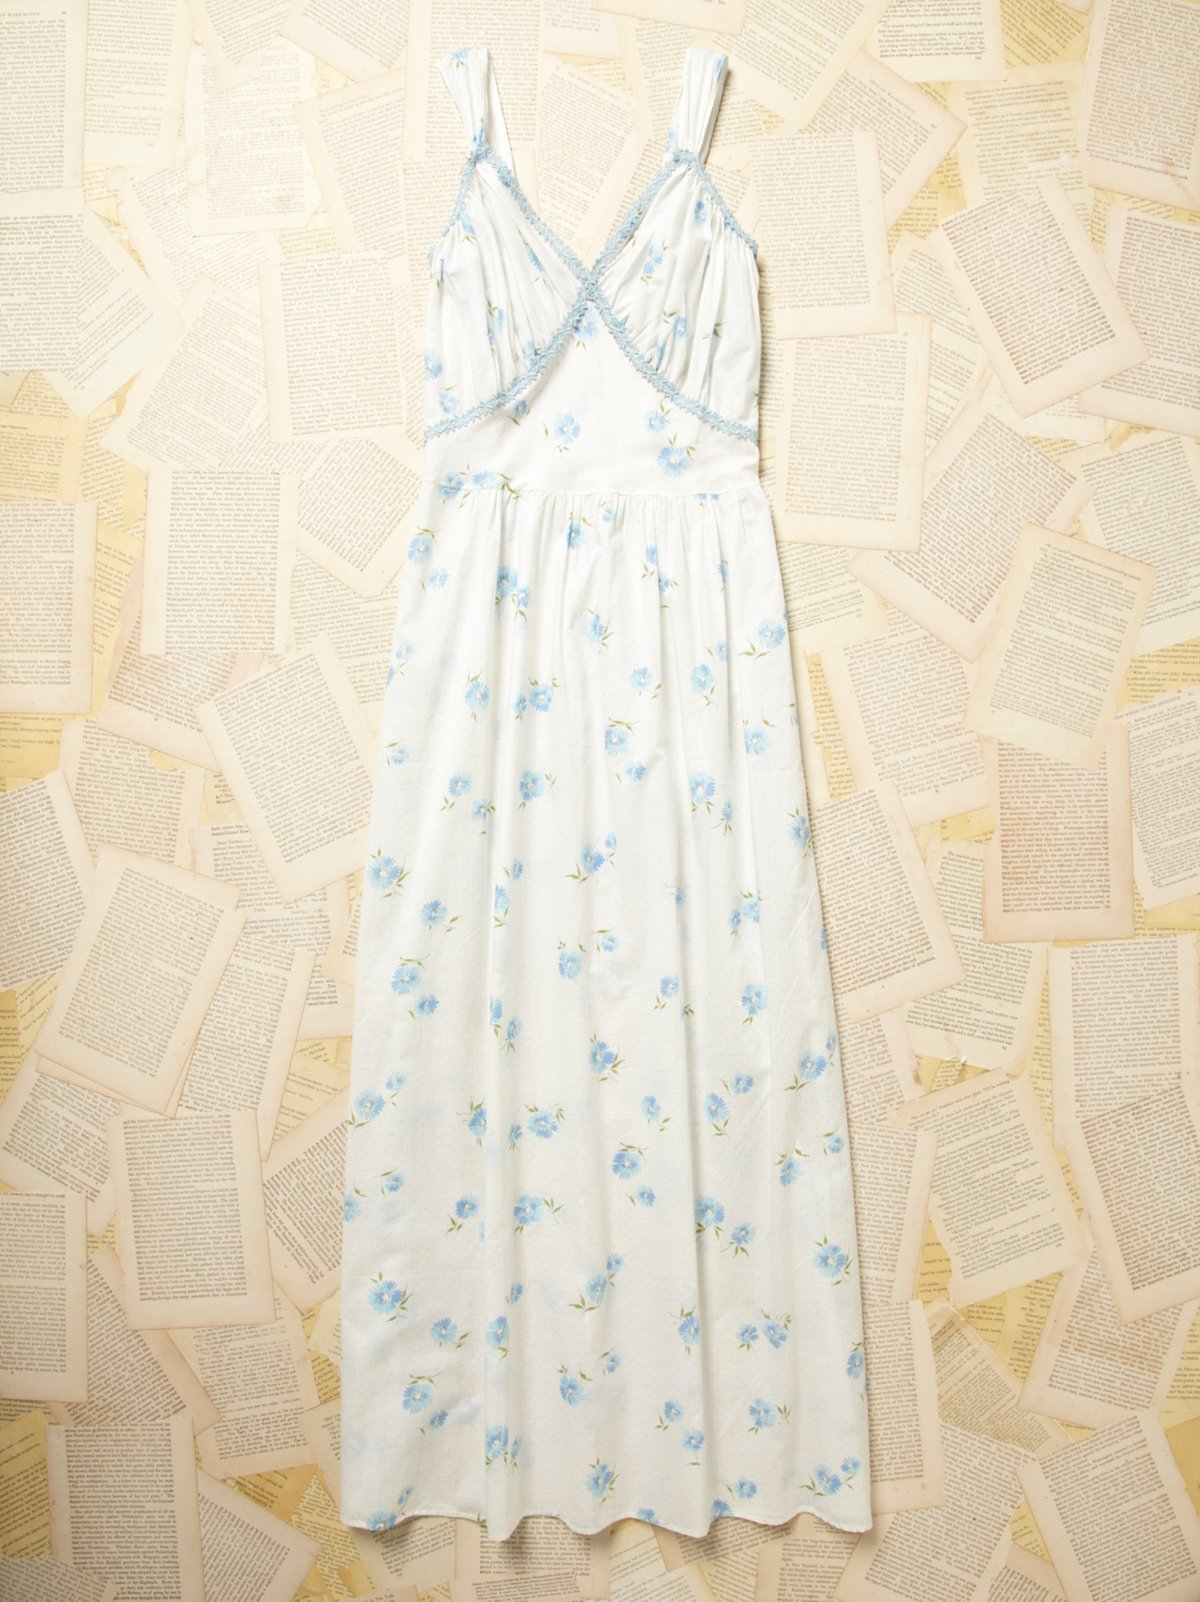 Vintage 1960s Blue Floral Cotton Dress